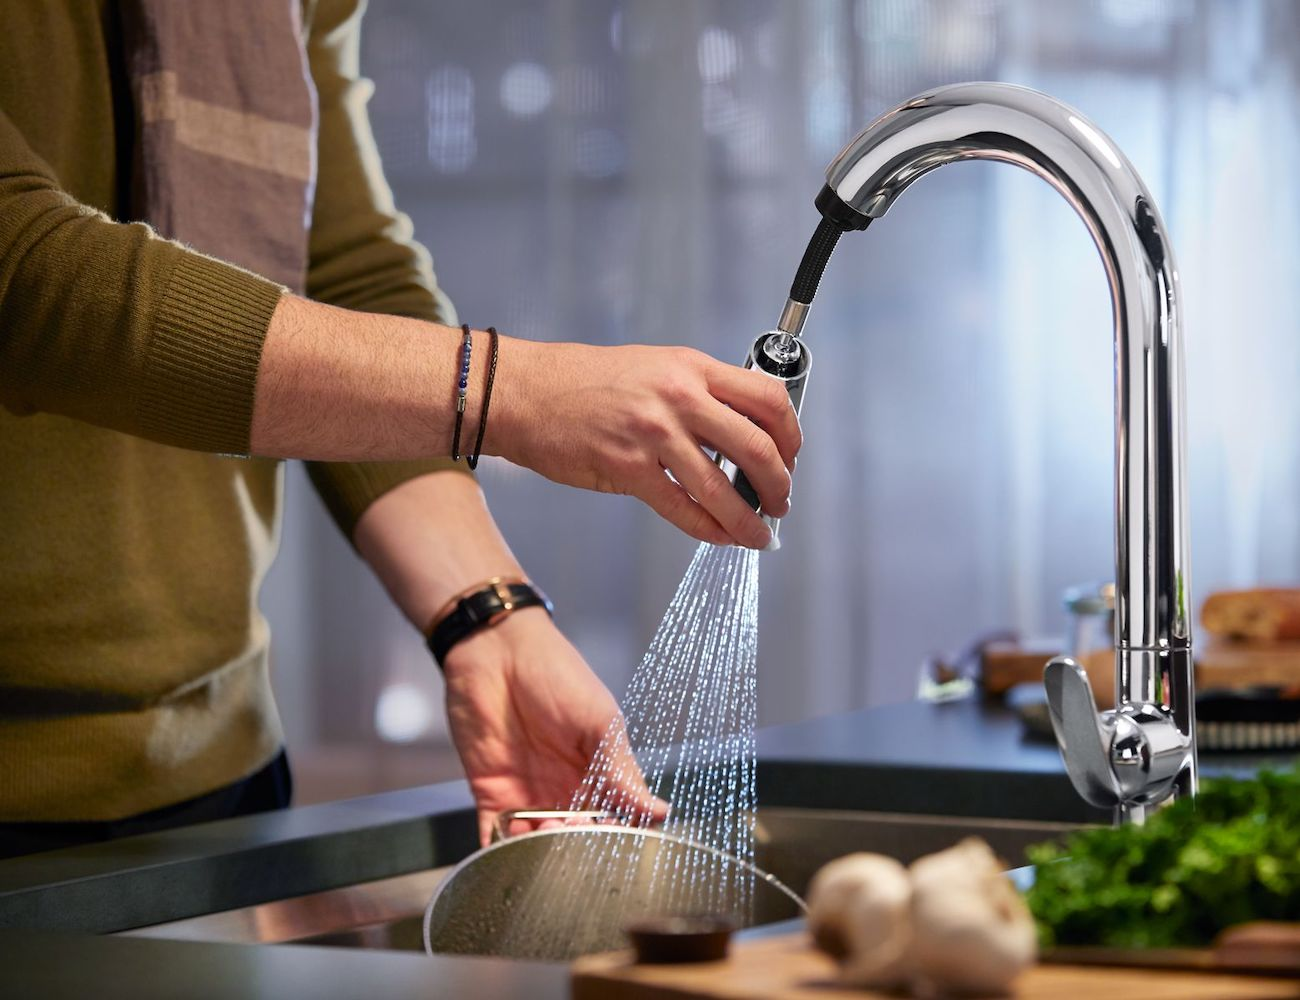 kohler konnect sensate smart kitchen sink faucet can be activated with your voice